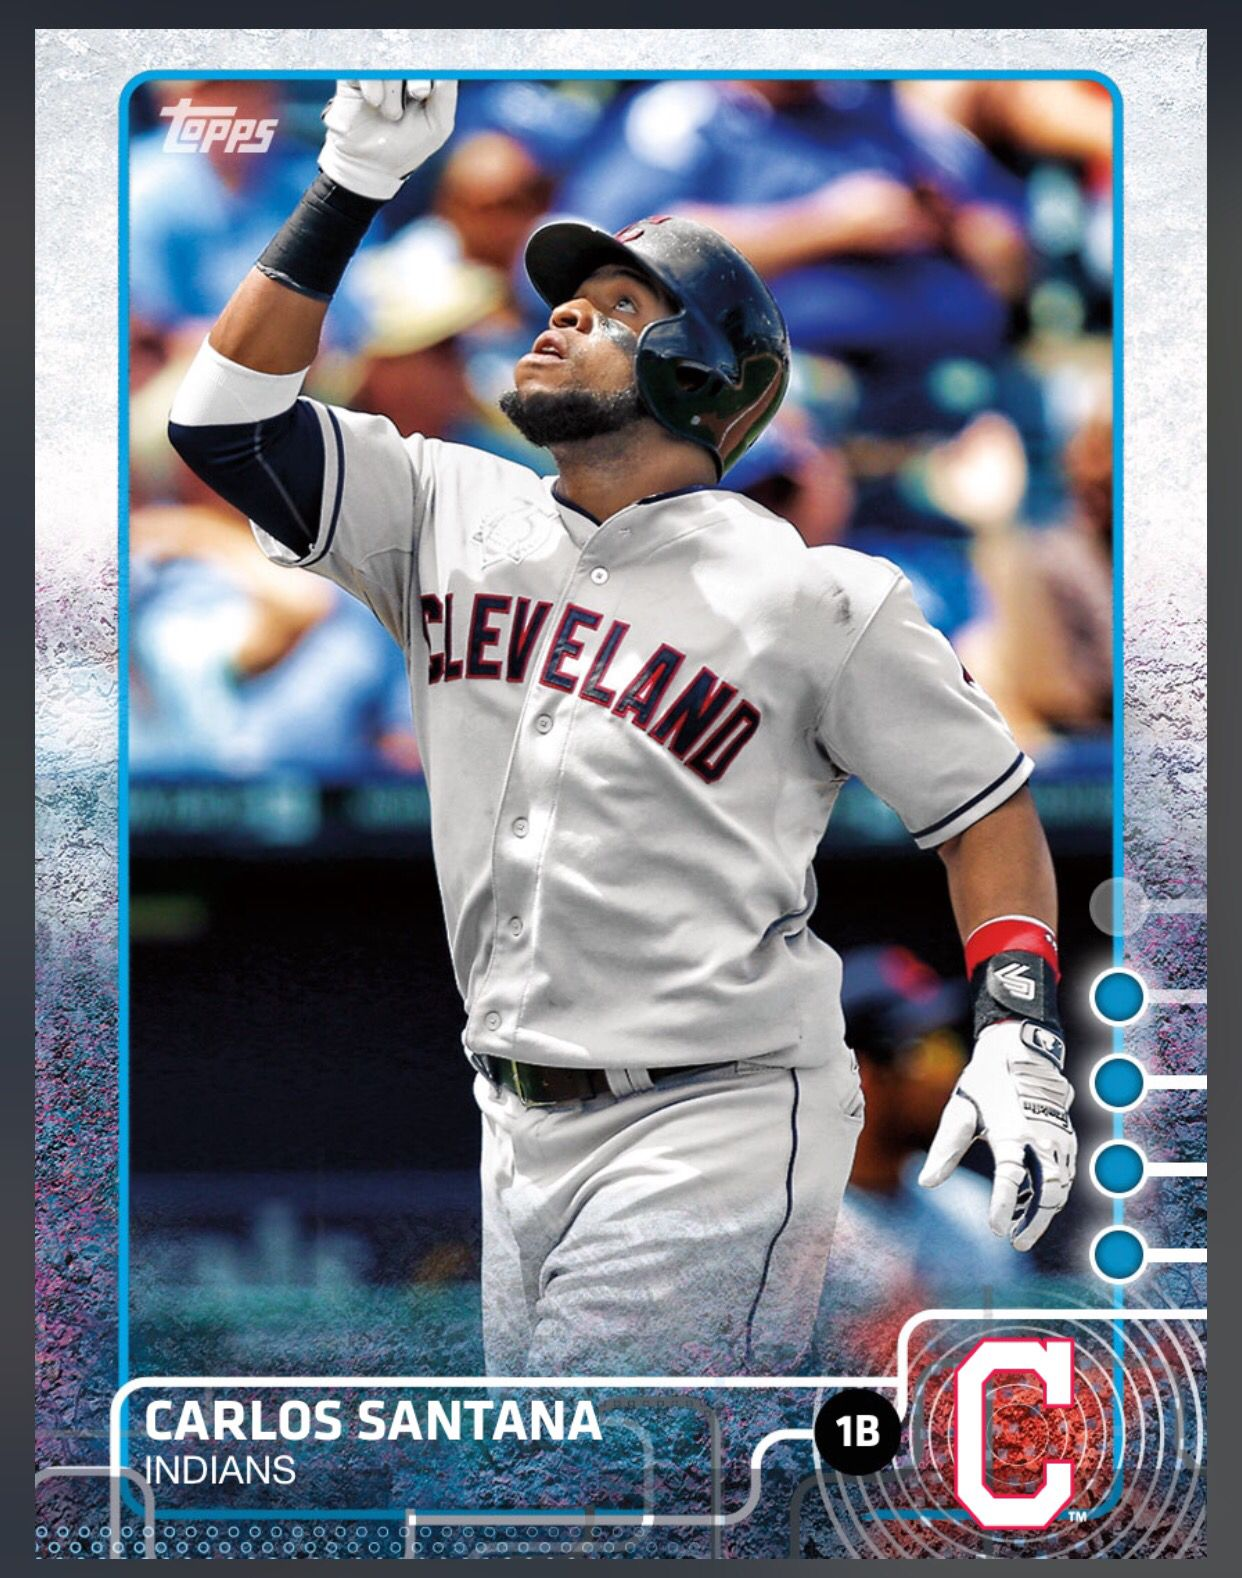 Carlos Santana Cleveland Indians Blue Parallel Card 2015 Topps Bunt